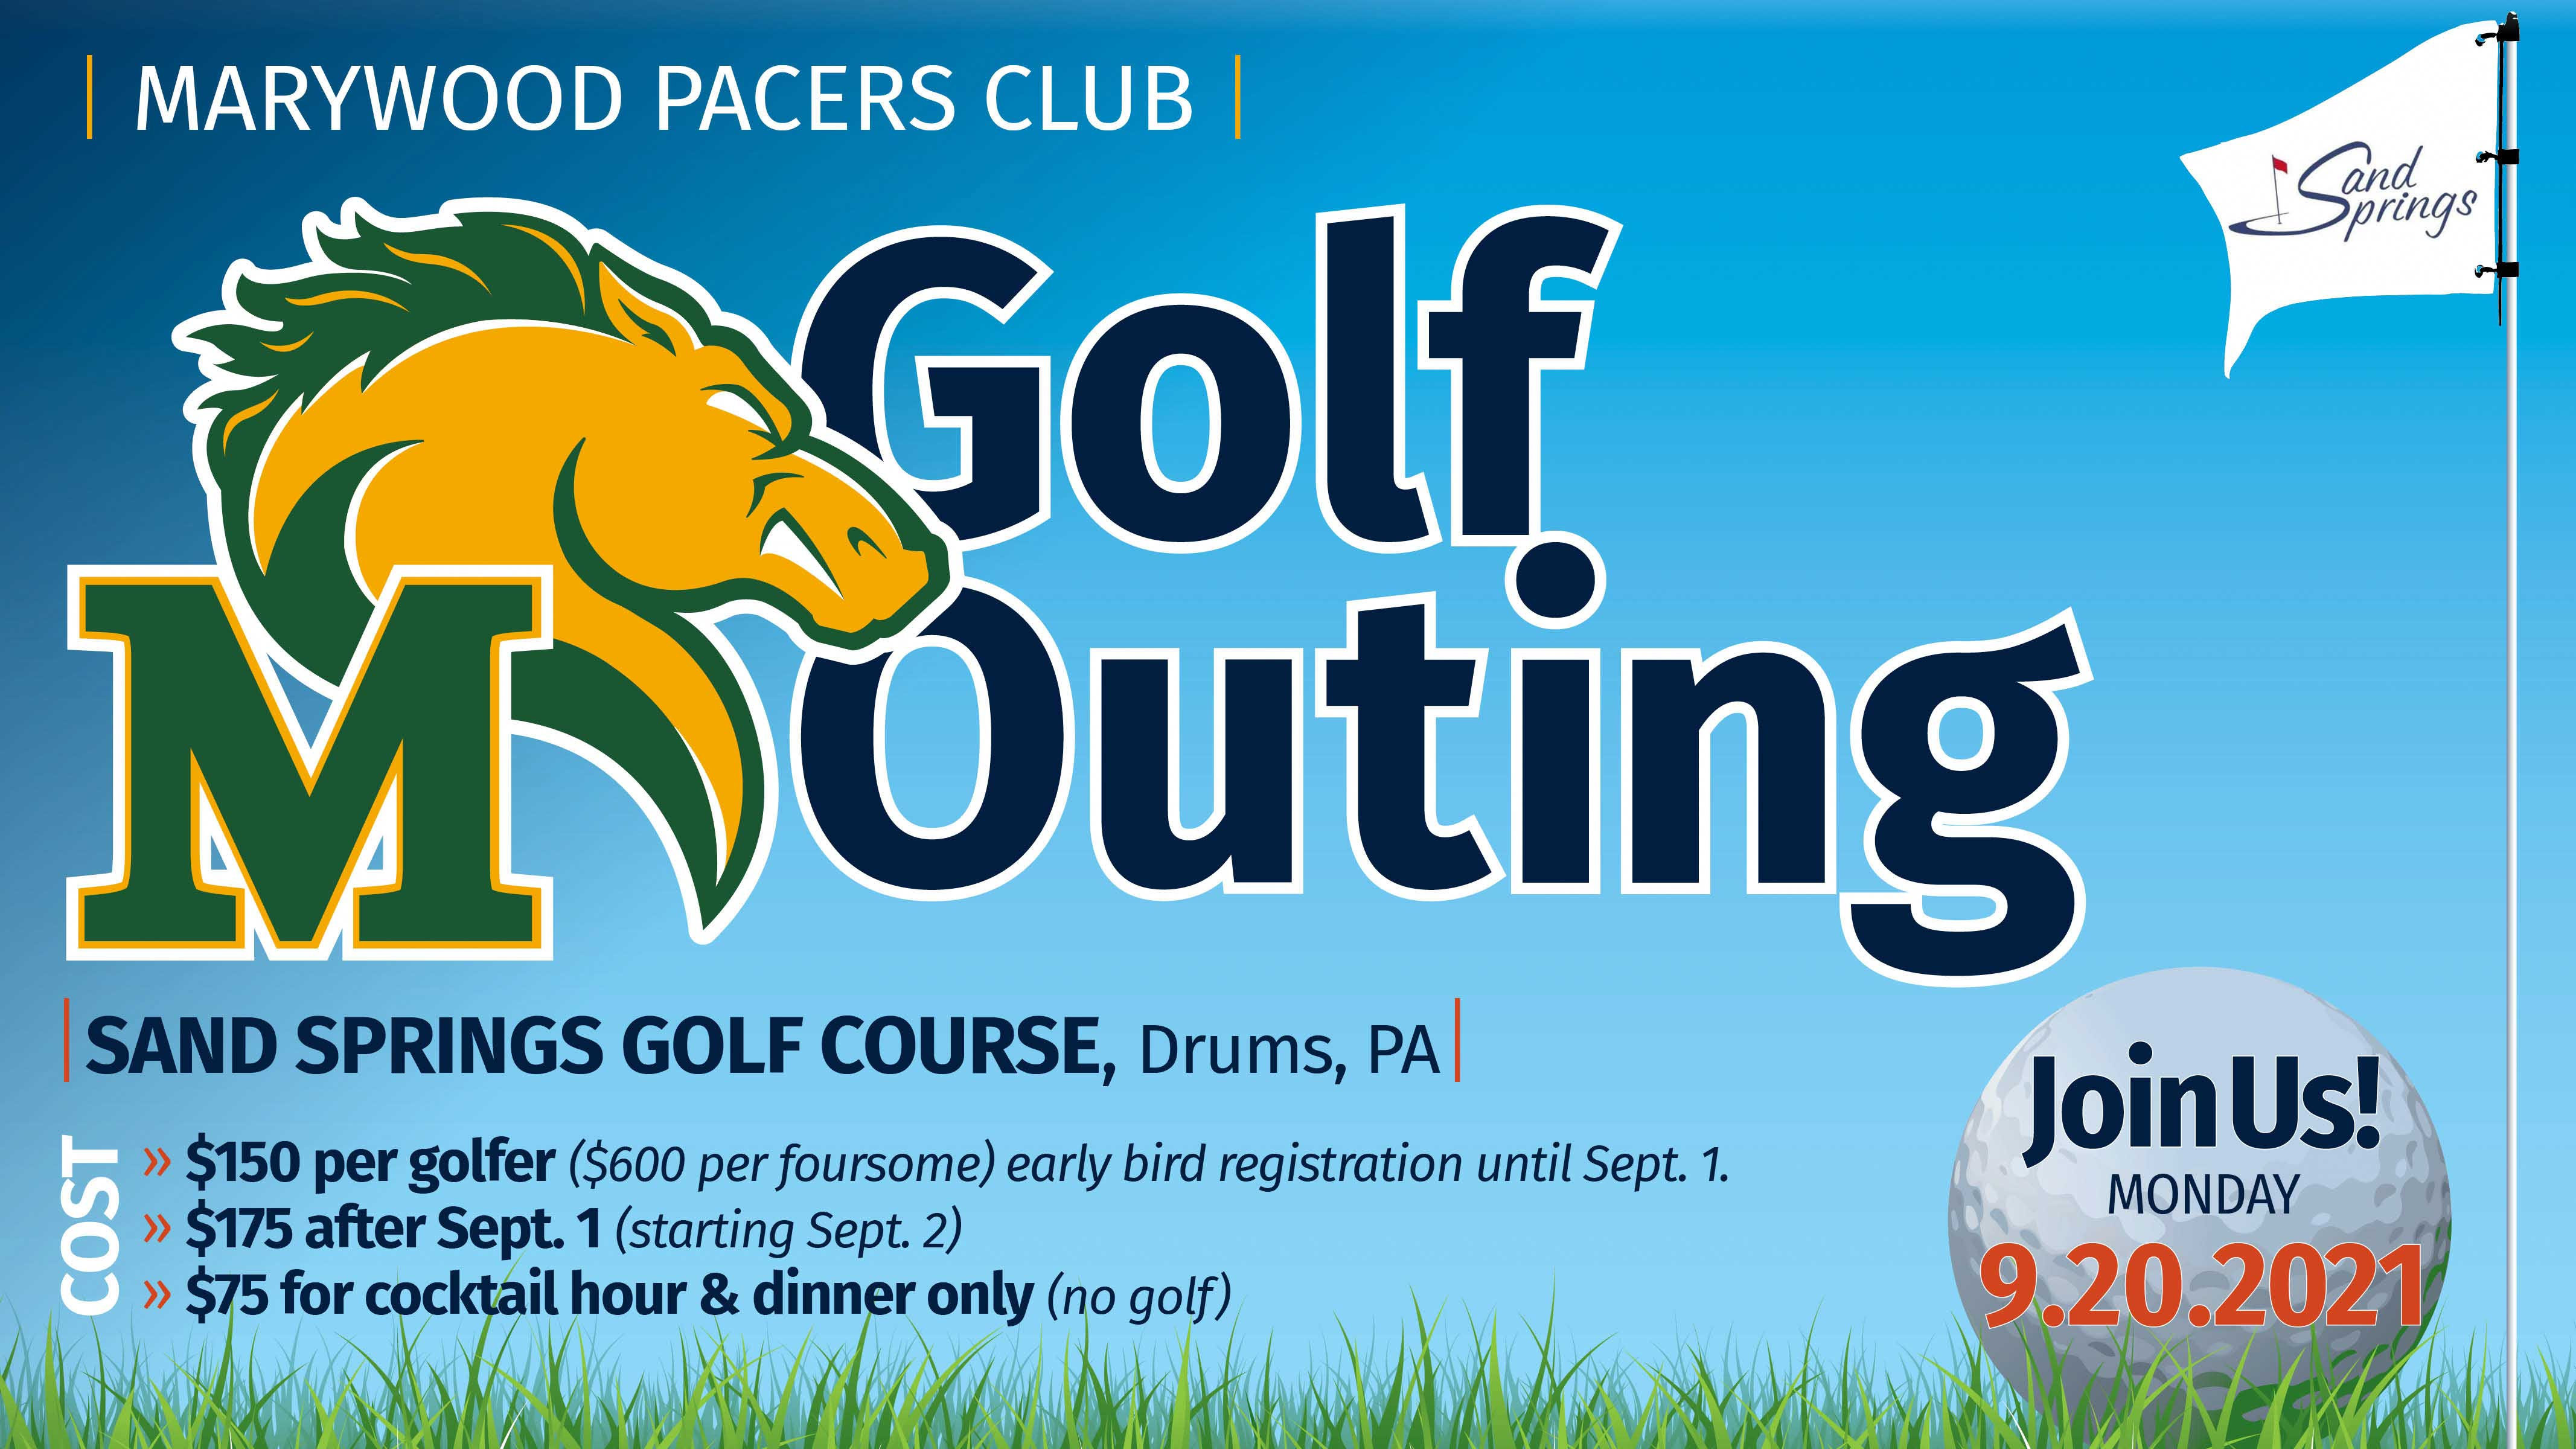 Marywood University - Pacers Club Golf Outing